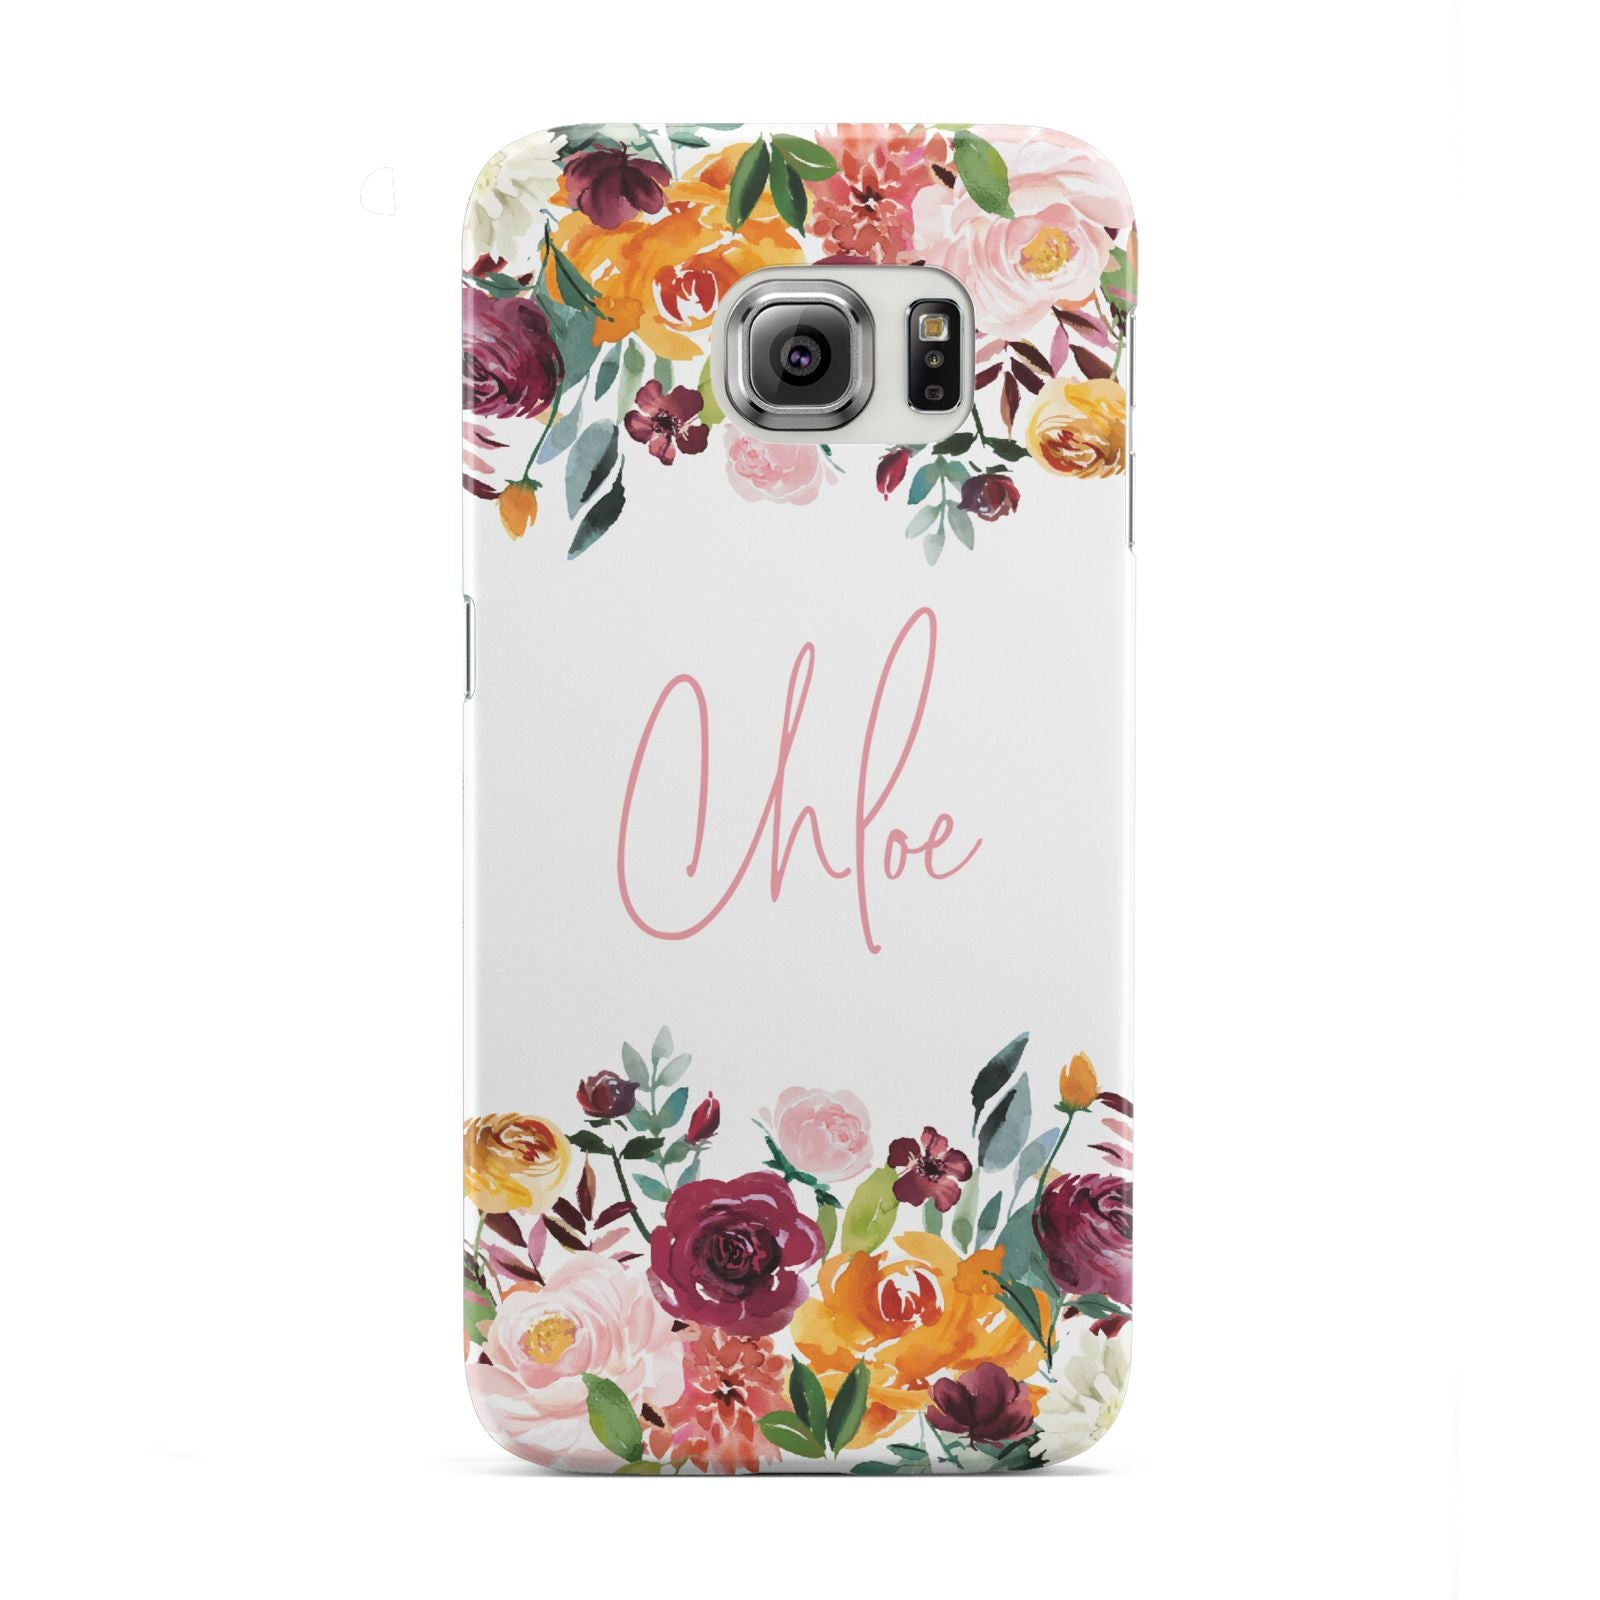 Personalised Name Transparent Flowers Samsung Galaxy S6 Edge Case